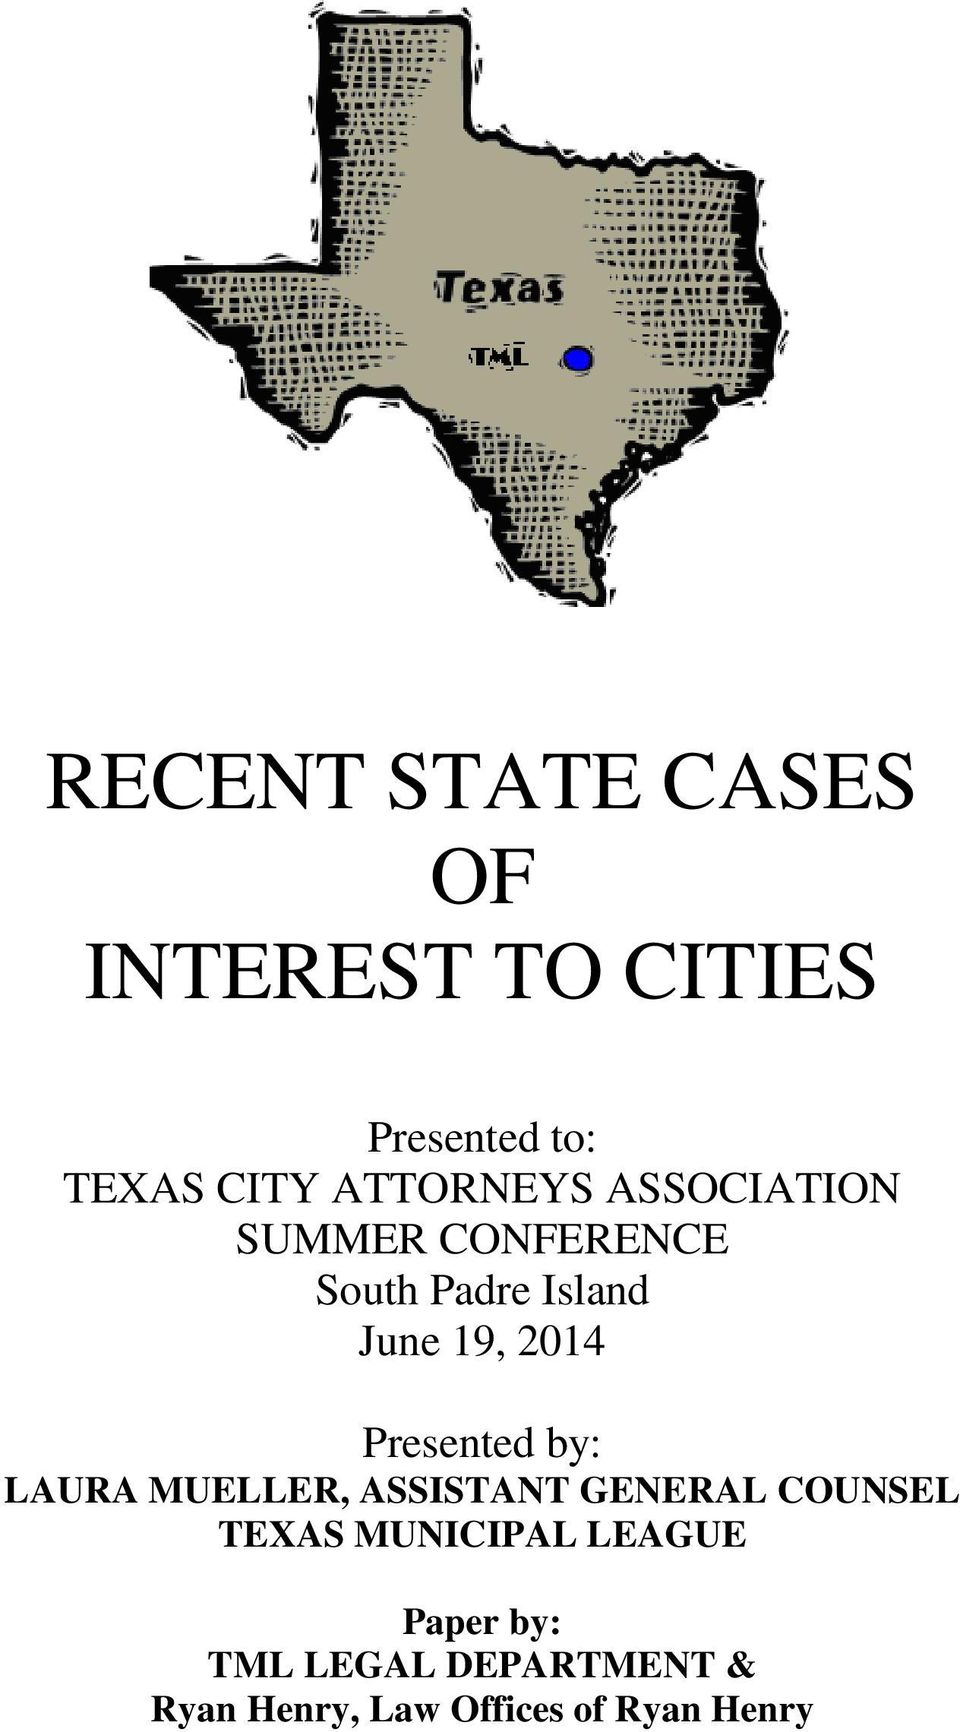 2014 Presented by: LAURA MUELLER, ASSISTANT GENERAL COUNSEL TEXAS